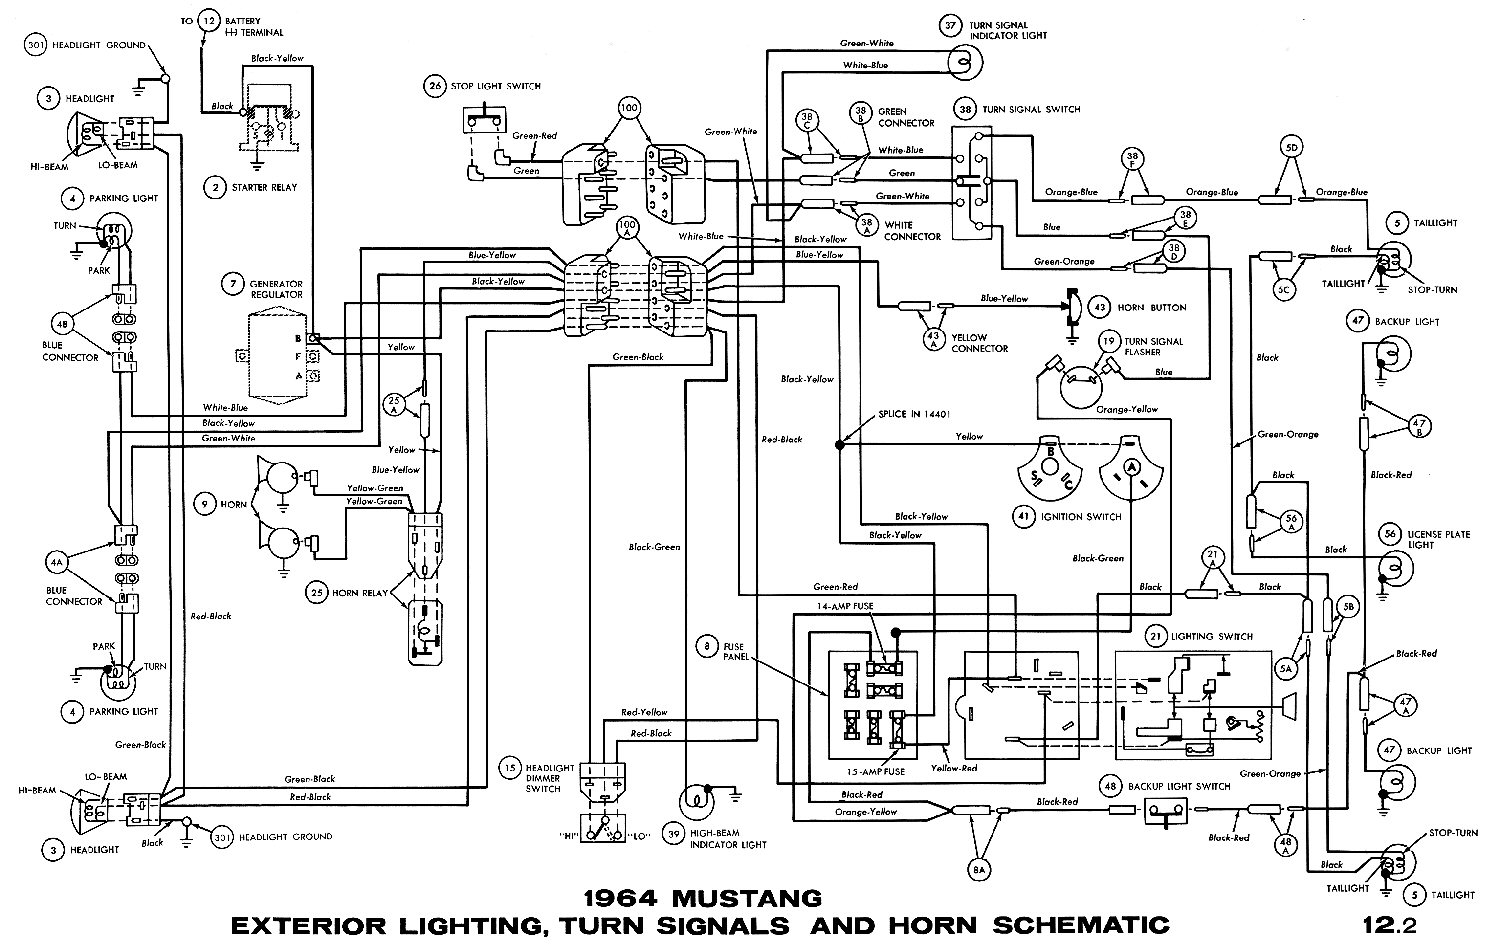 1964 Mustang Wiring Diagrams Average Joe Restoration Dial Dimmer Switch Diagram Headlamps